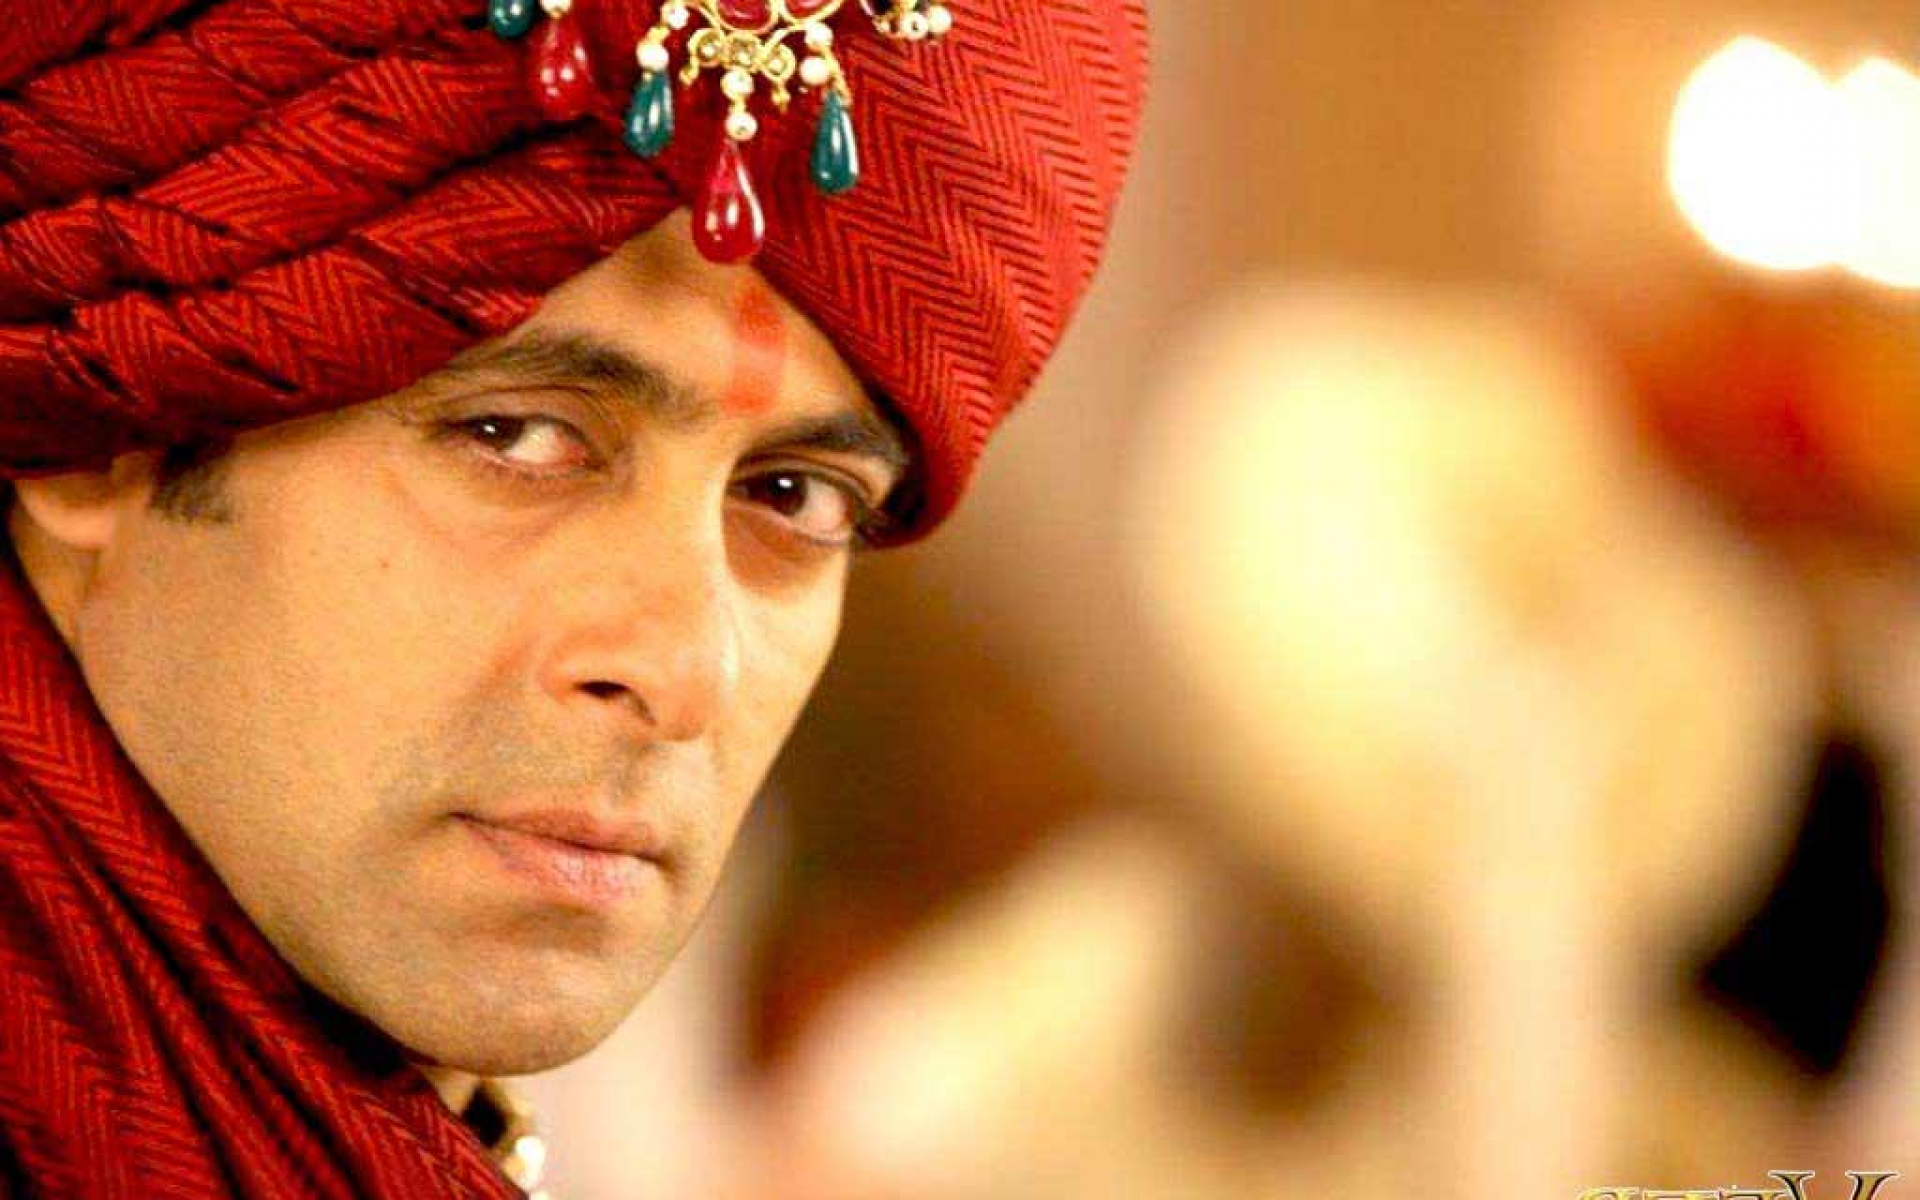 bollywood-actor-salman-khan-hd-wallpaper-hd-bollywood-wallpapers